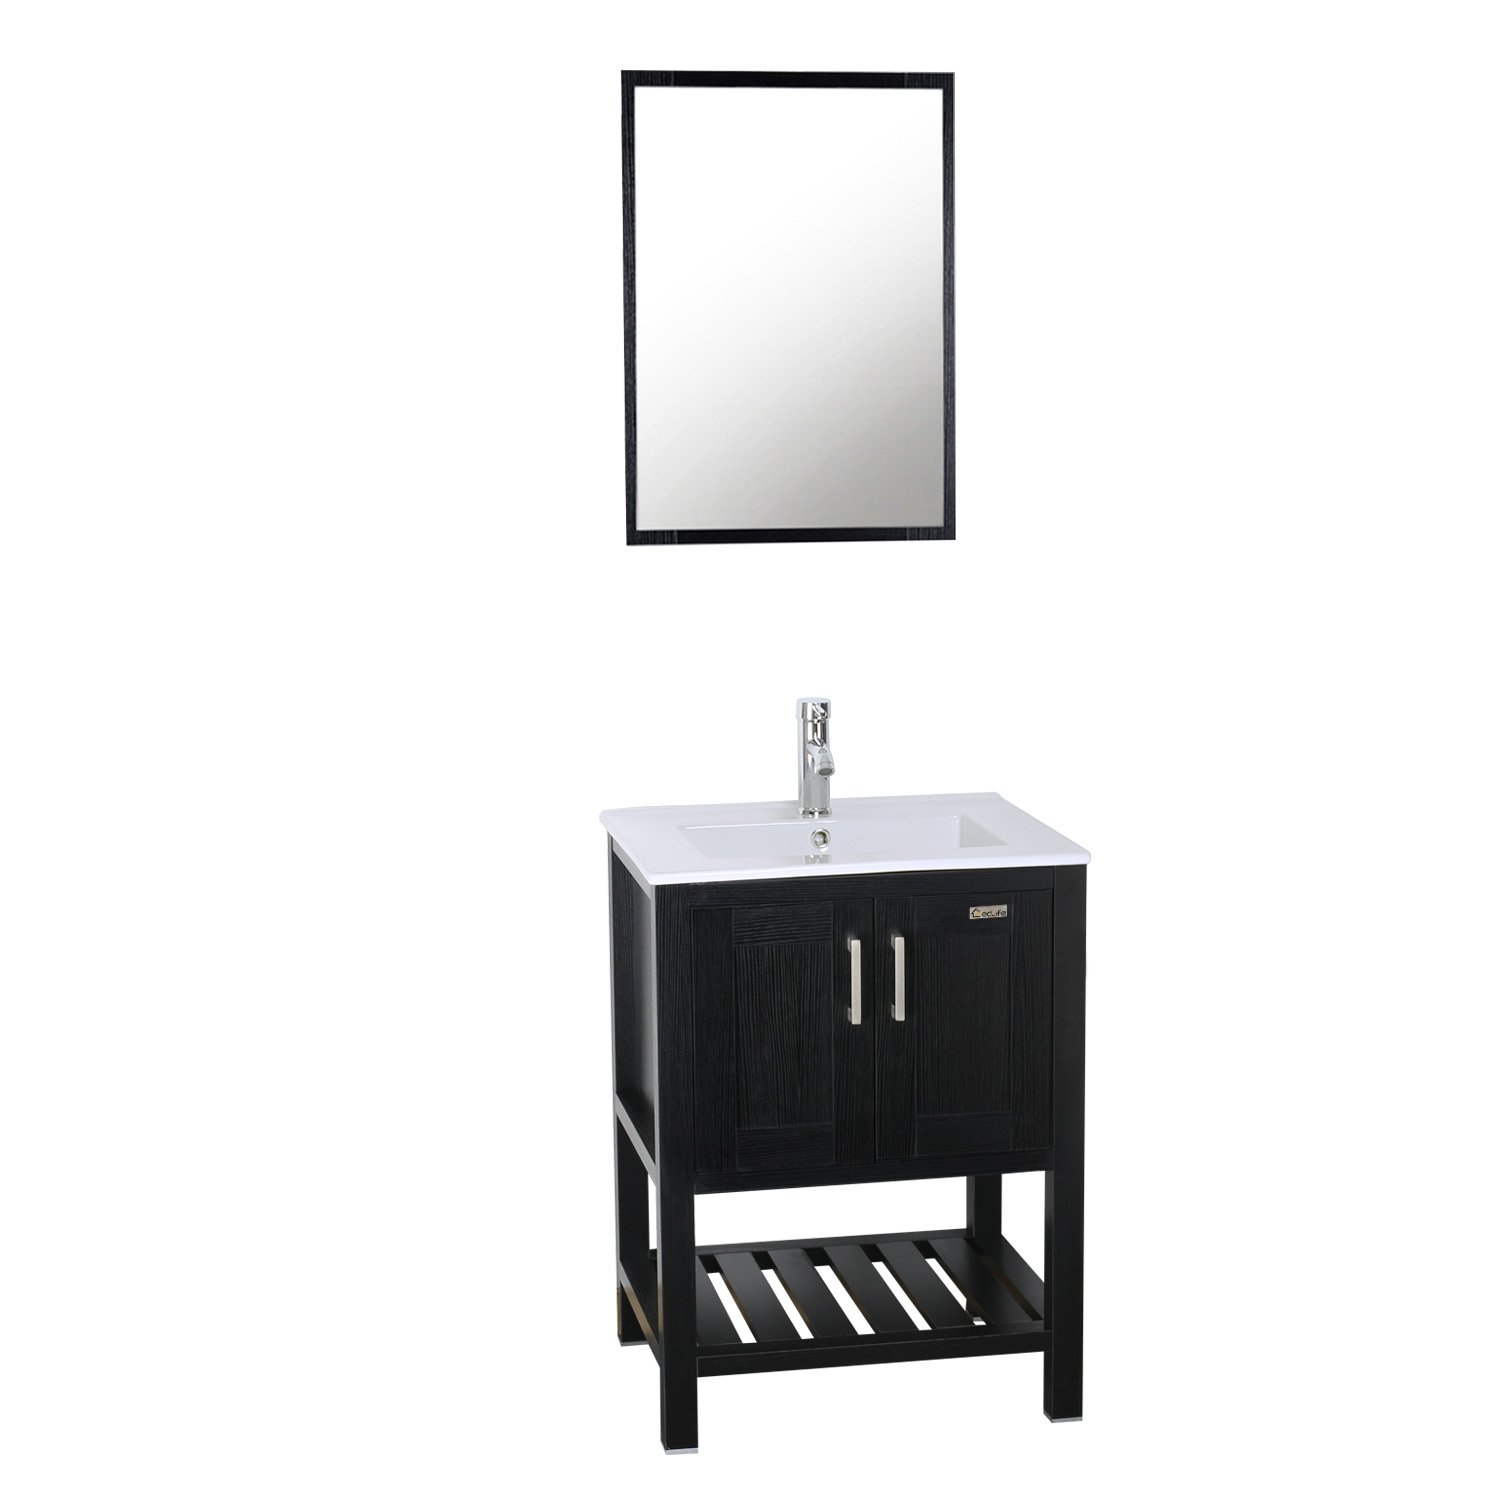 eclife 24 Bathroom Vanity Sink Combo W Overflow White Drop in Ceramic Vessel Sink Top Black MDF Modern Bathroom Cabinet Chrome Solid Brass Faucet Pop Up Drain W Mirror A08B07